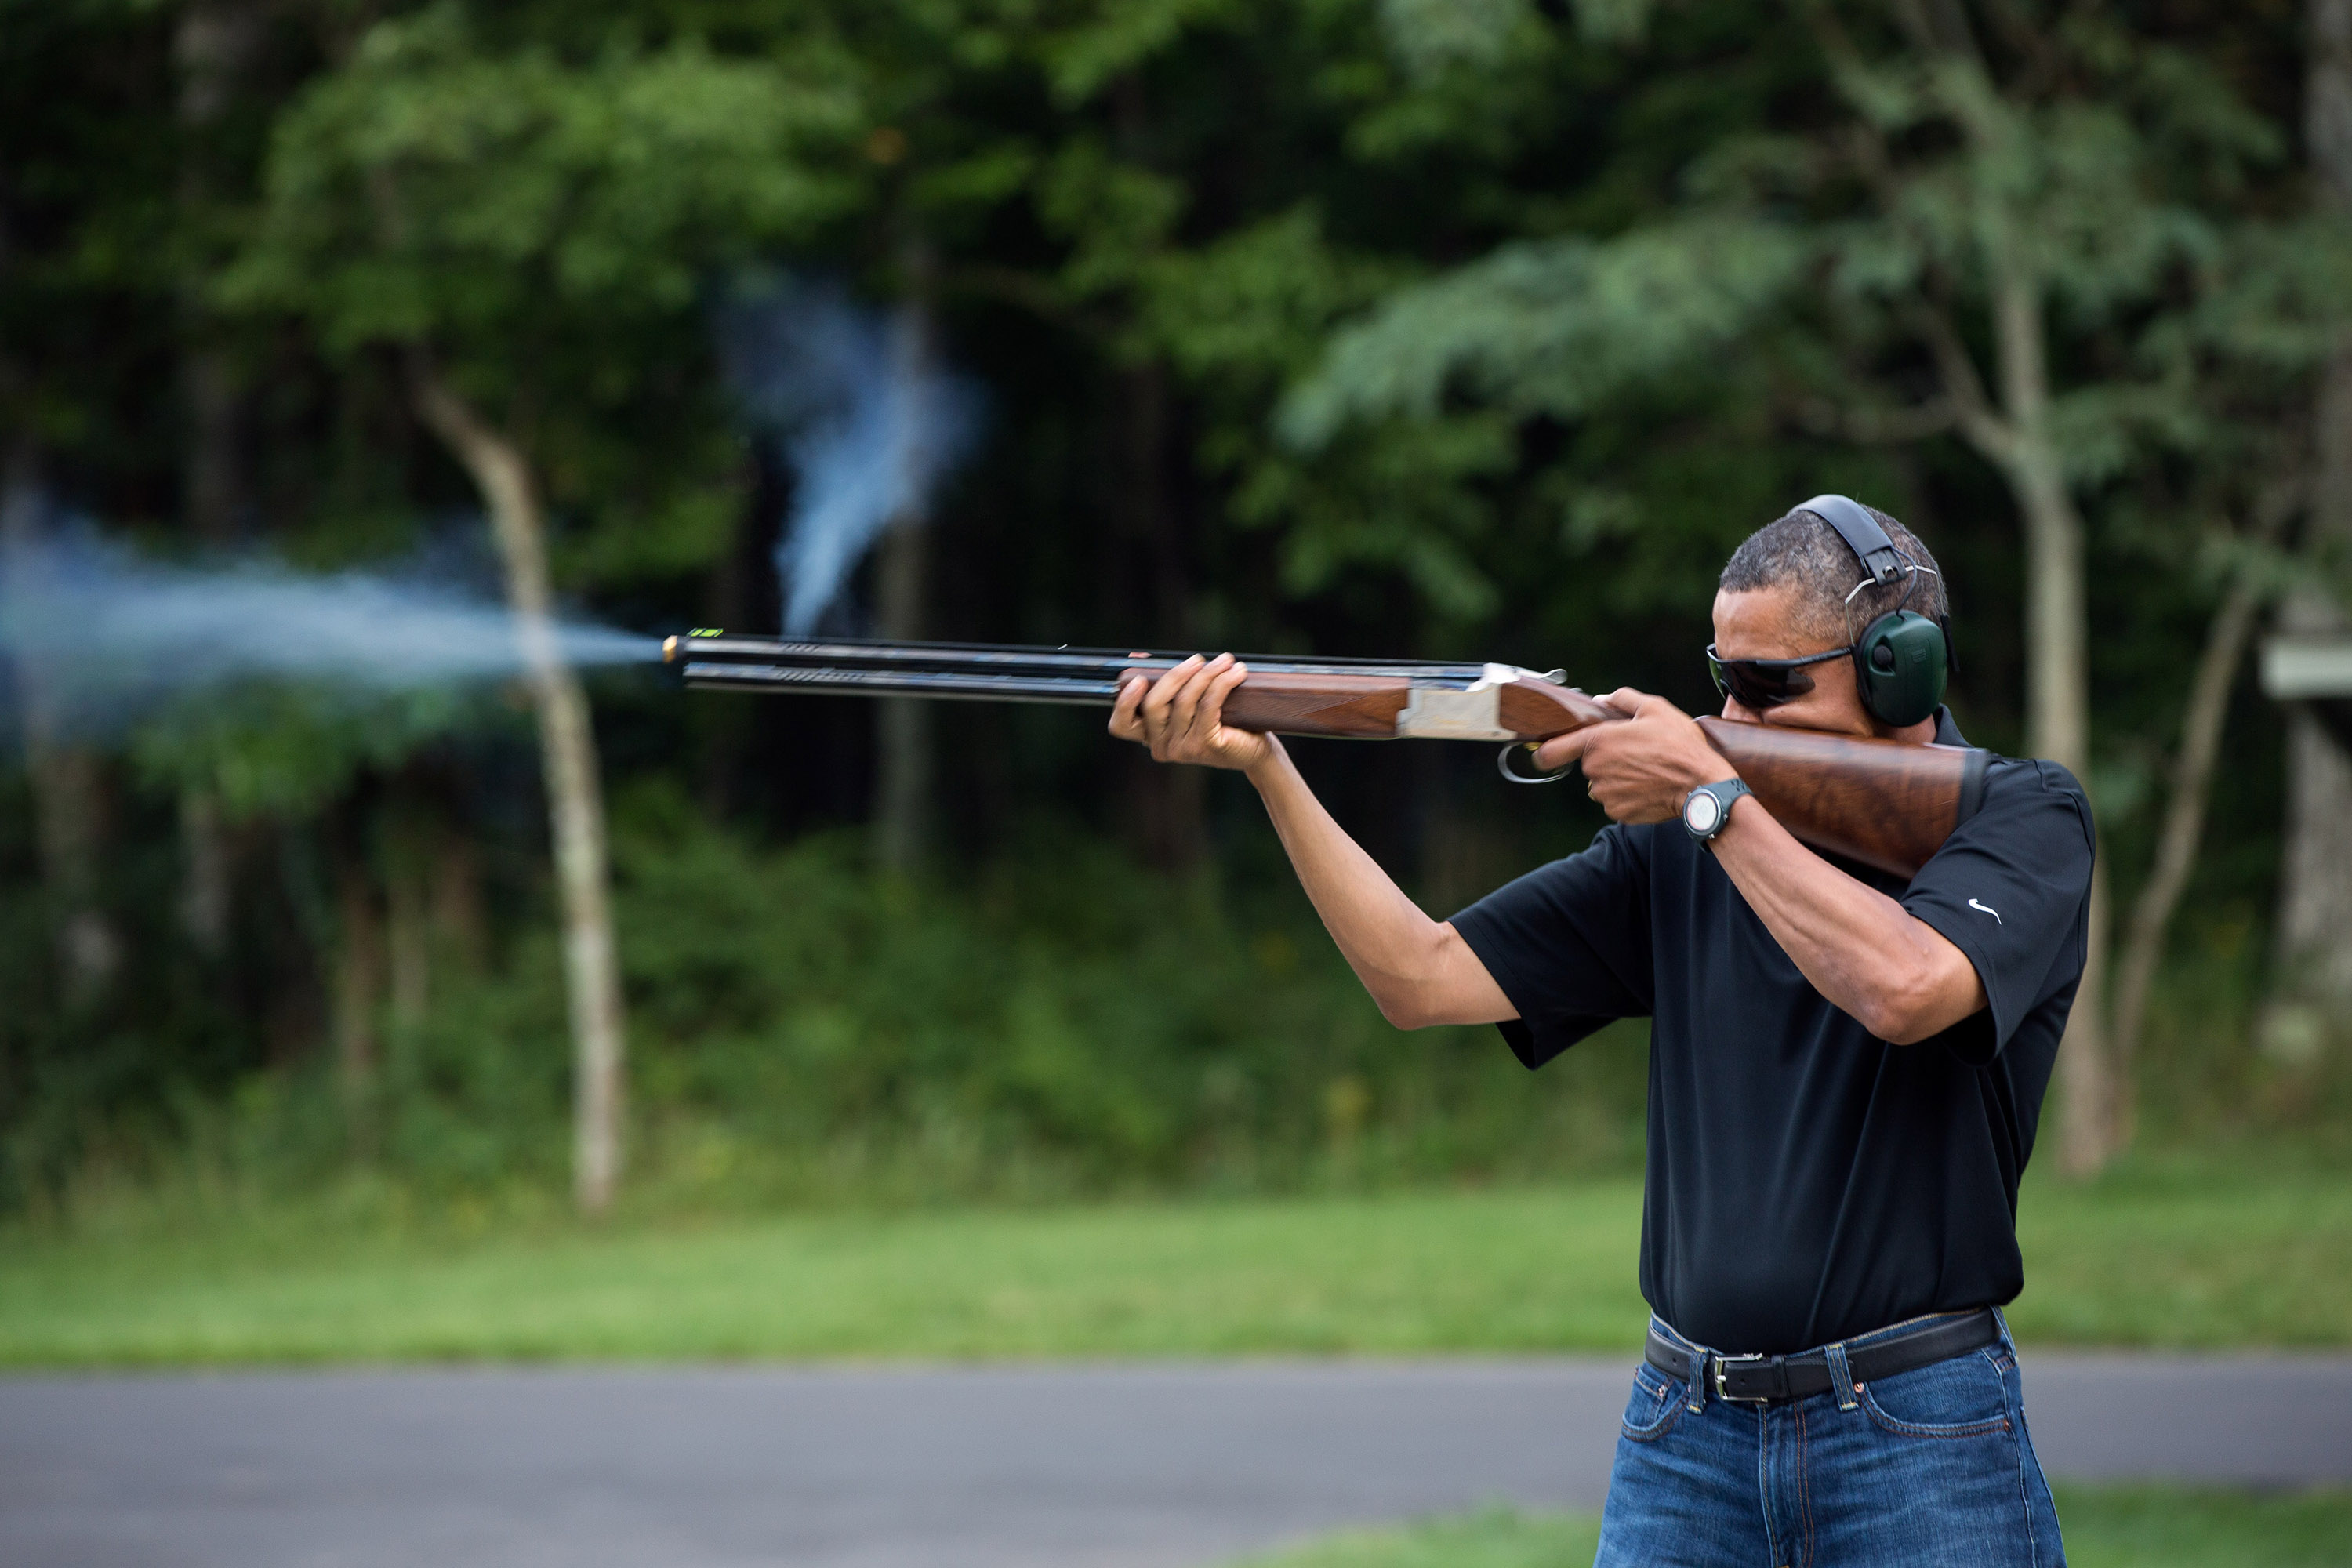 Obama Blames Guns Instead Of Radical Islam For Orlando Terror Attack During Military Town Hall Featured